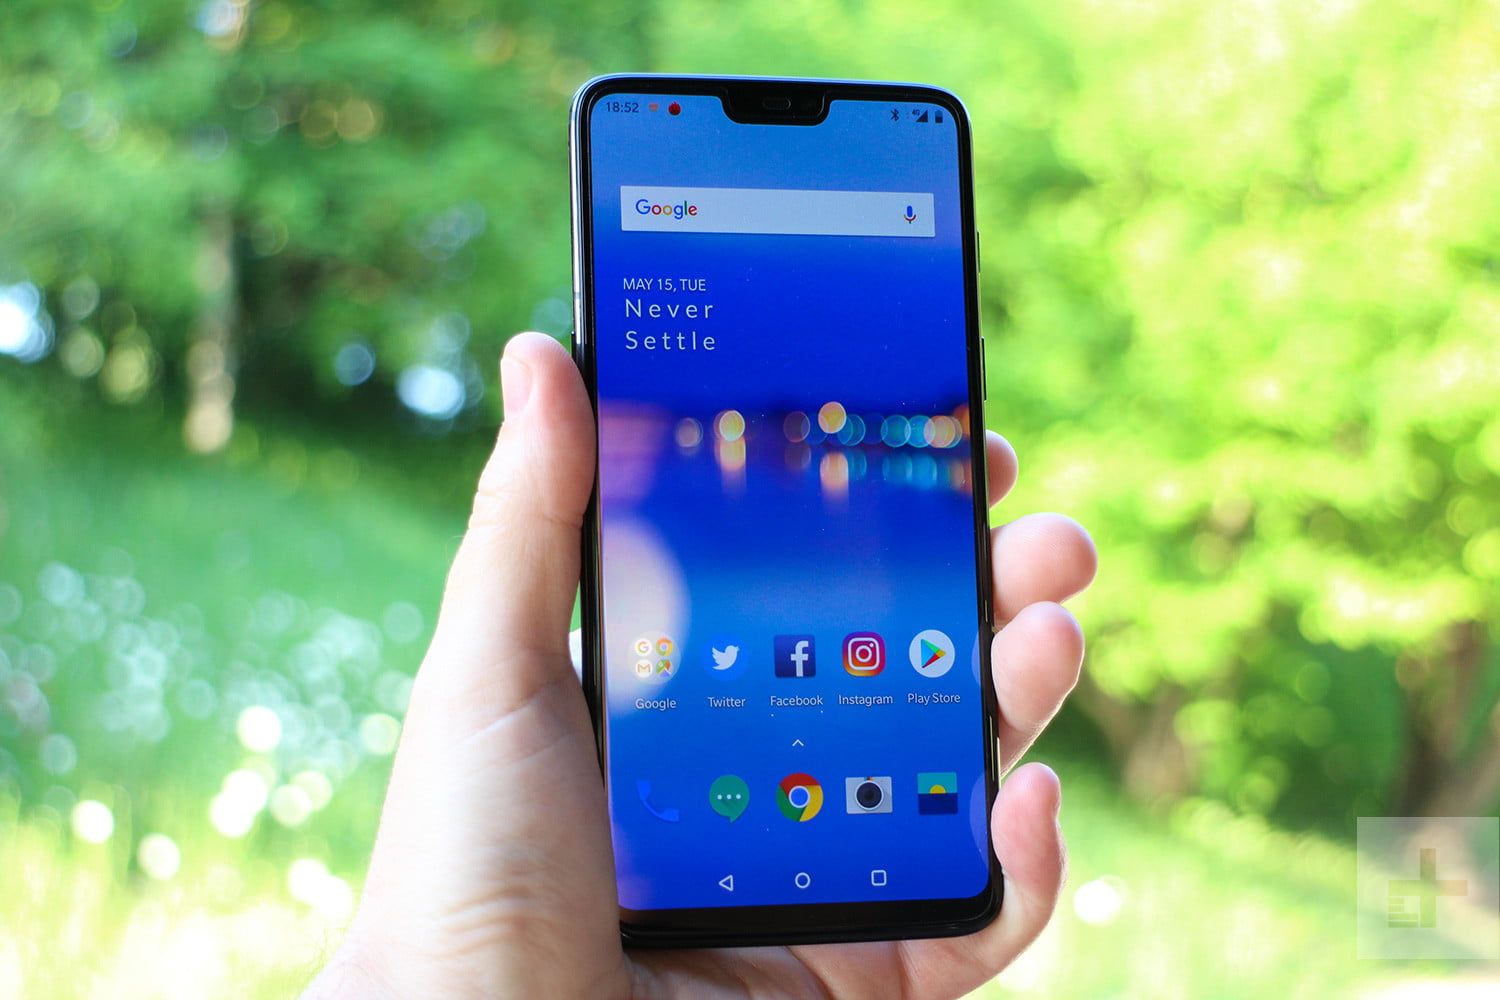 Handy OnePlus 6 Tips and Tricks to Get the Most Out of Your